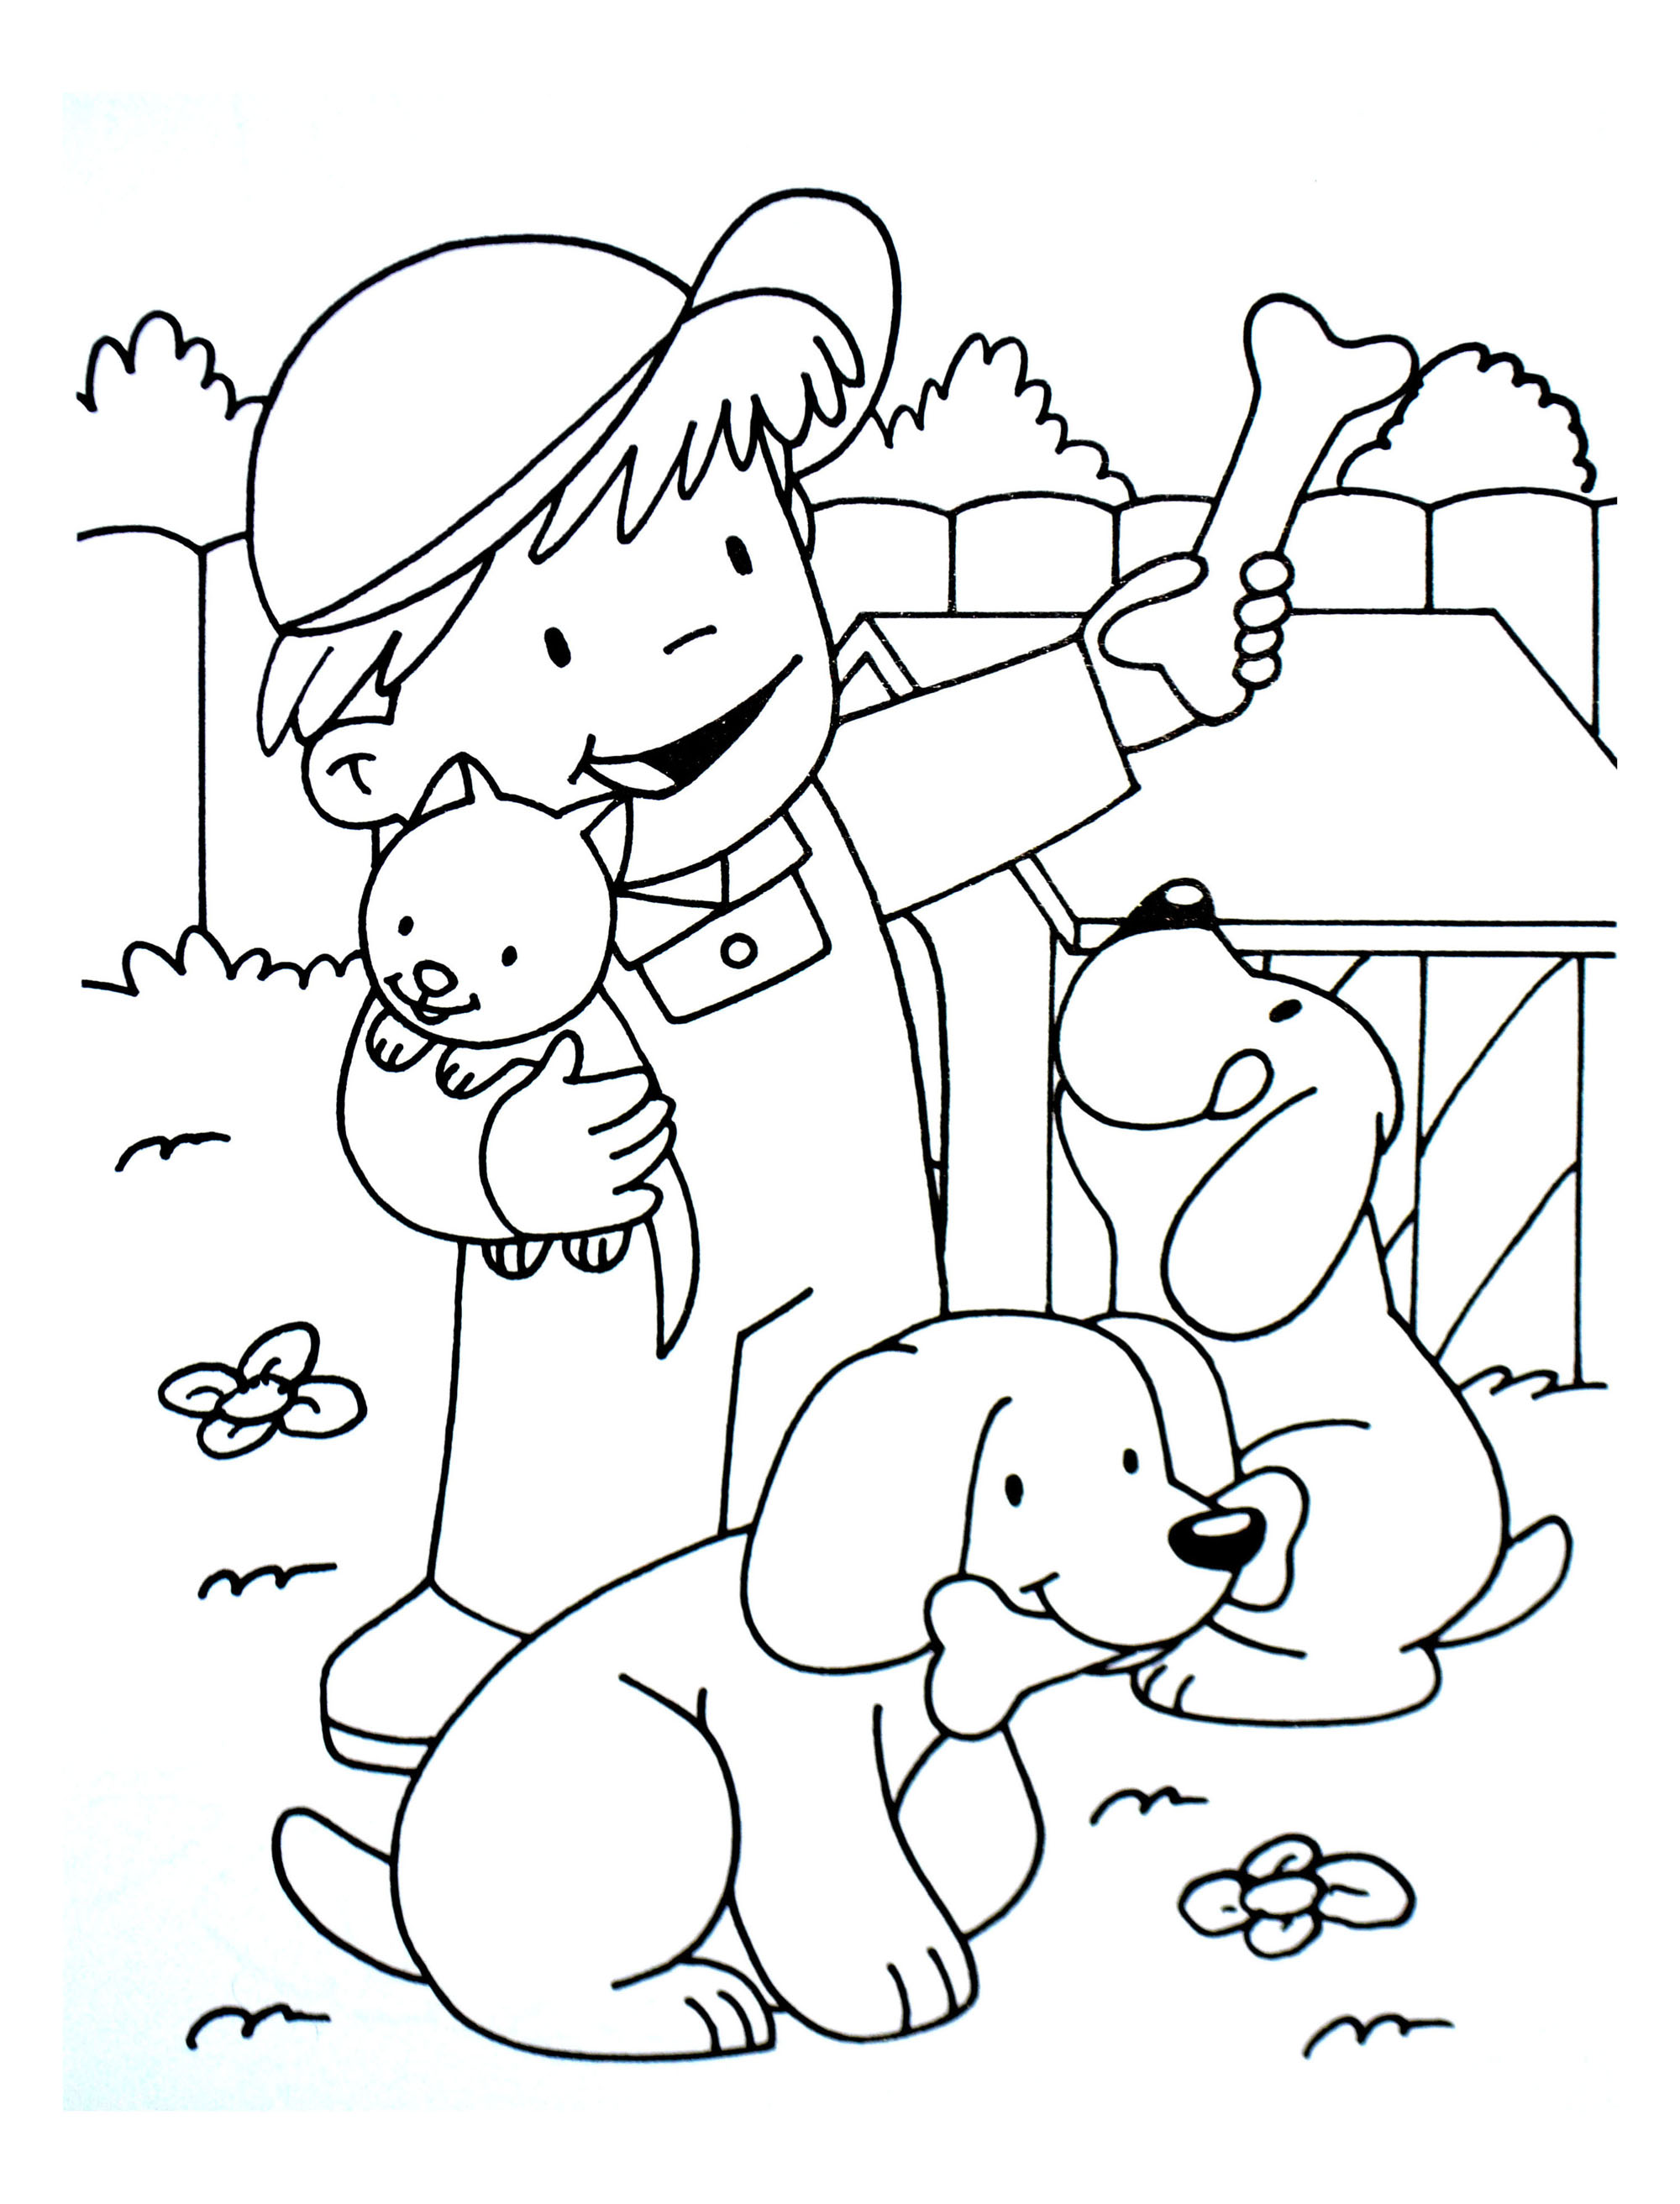 Simple Cat coloring page for children : Little farmer boy with kitten and dogs